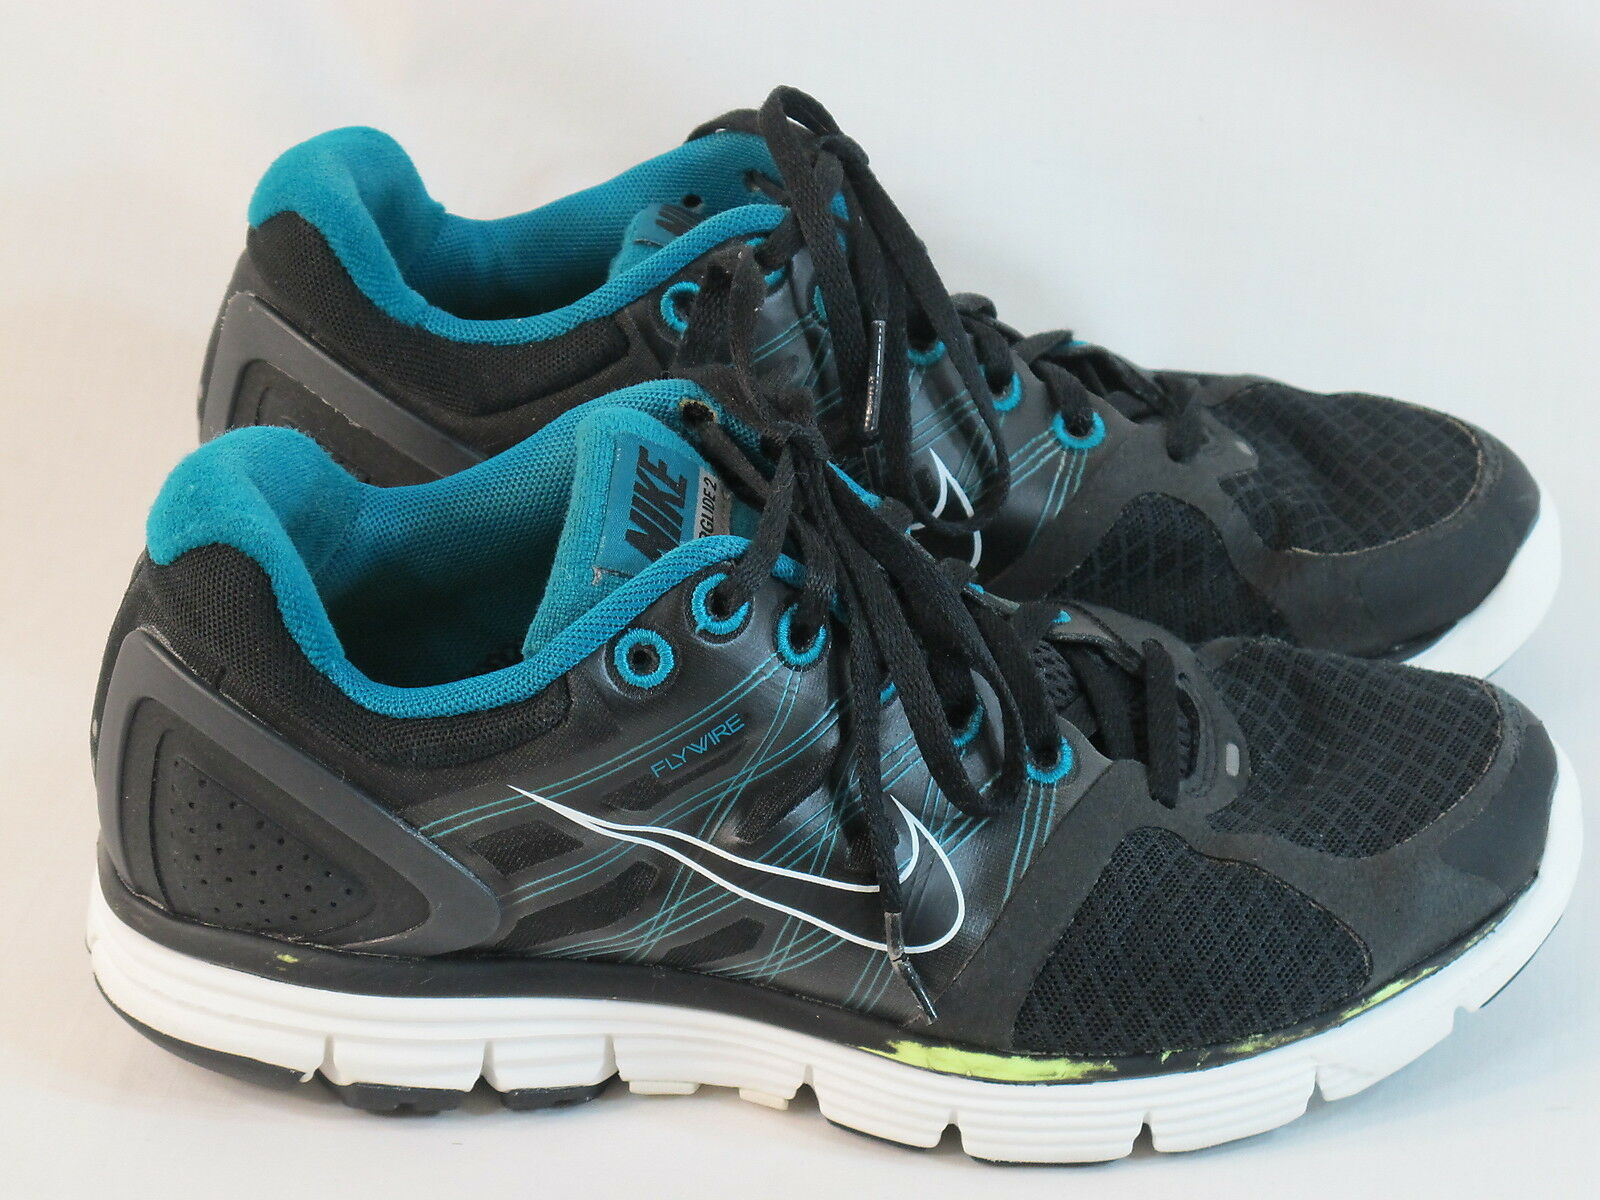 417c1ccb2829 Womens Nike Lunarglide 2 Running Shoes Size 7.5 for sale online